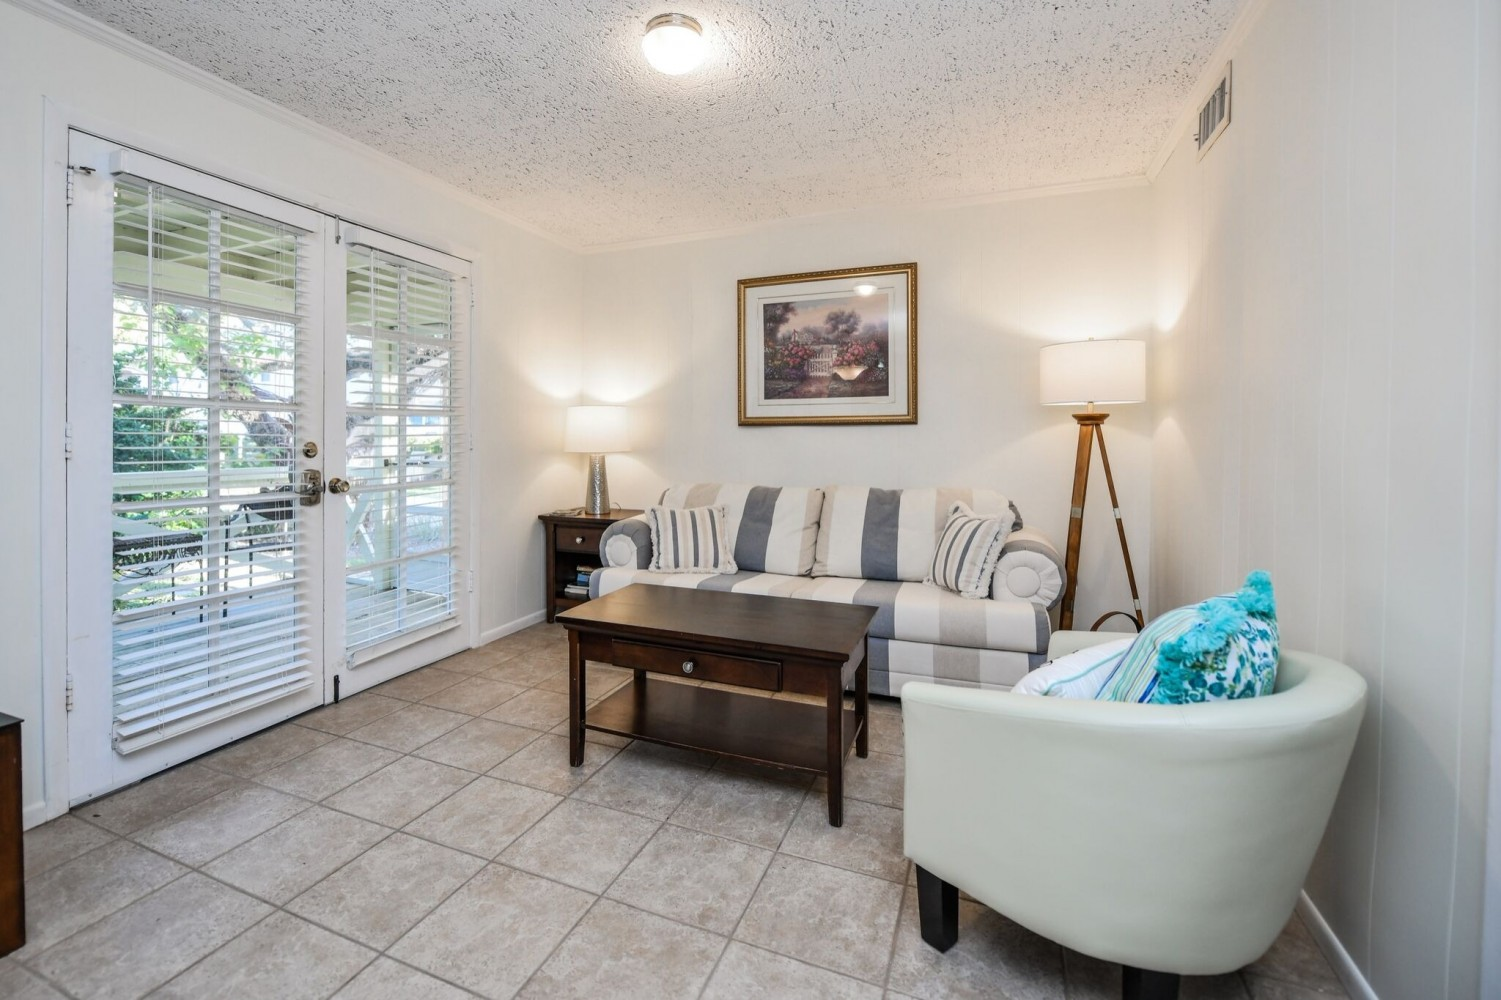 2 Bedroom Cottage 8A - Siesta Key Vacation Rentals